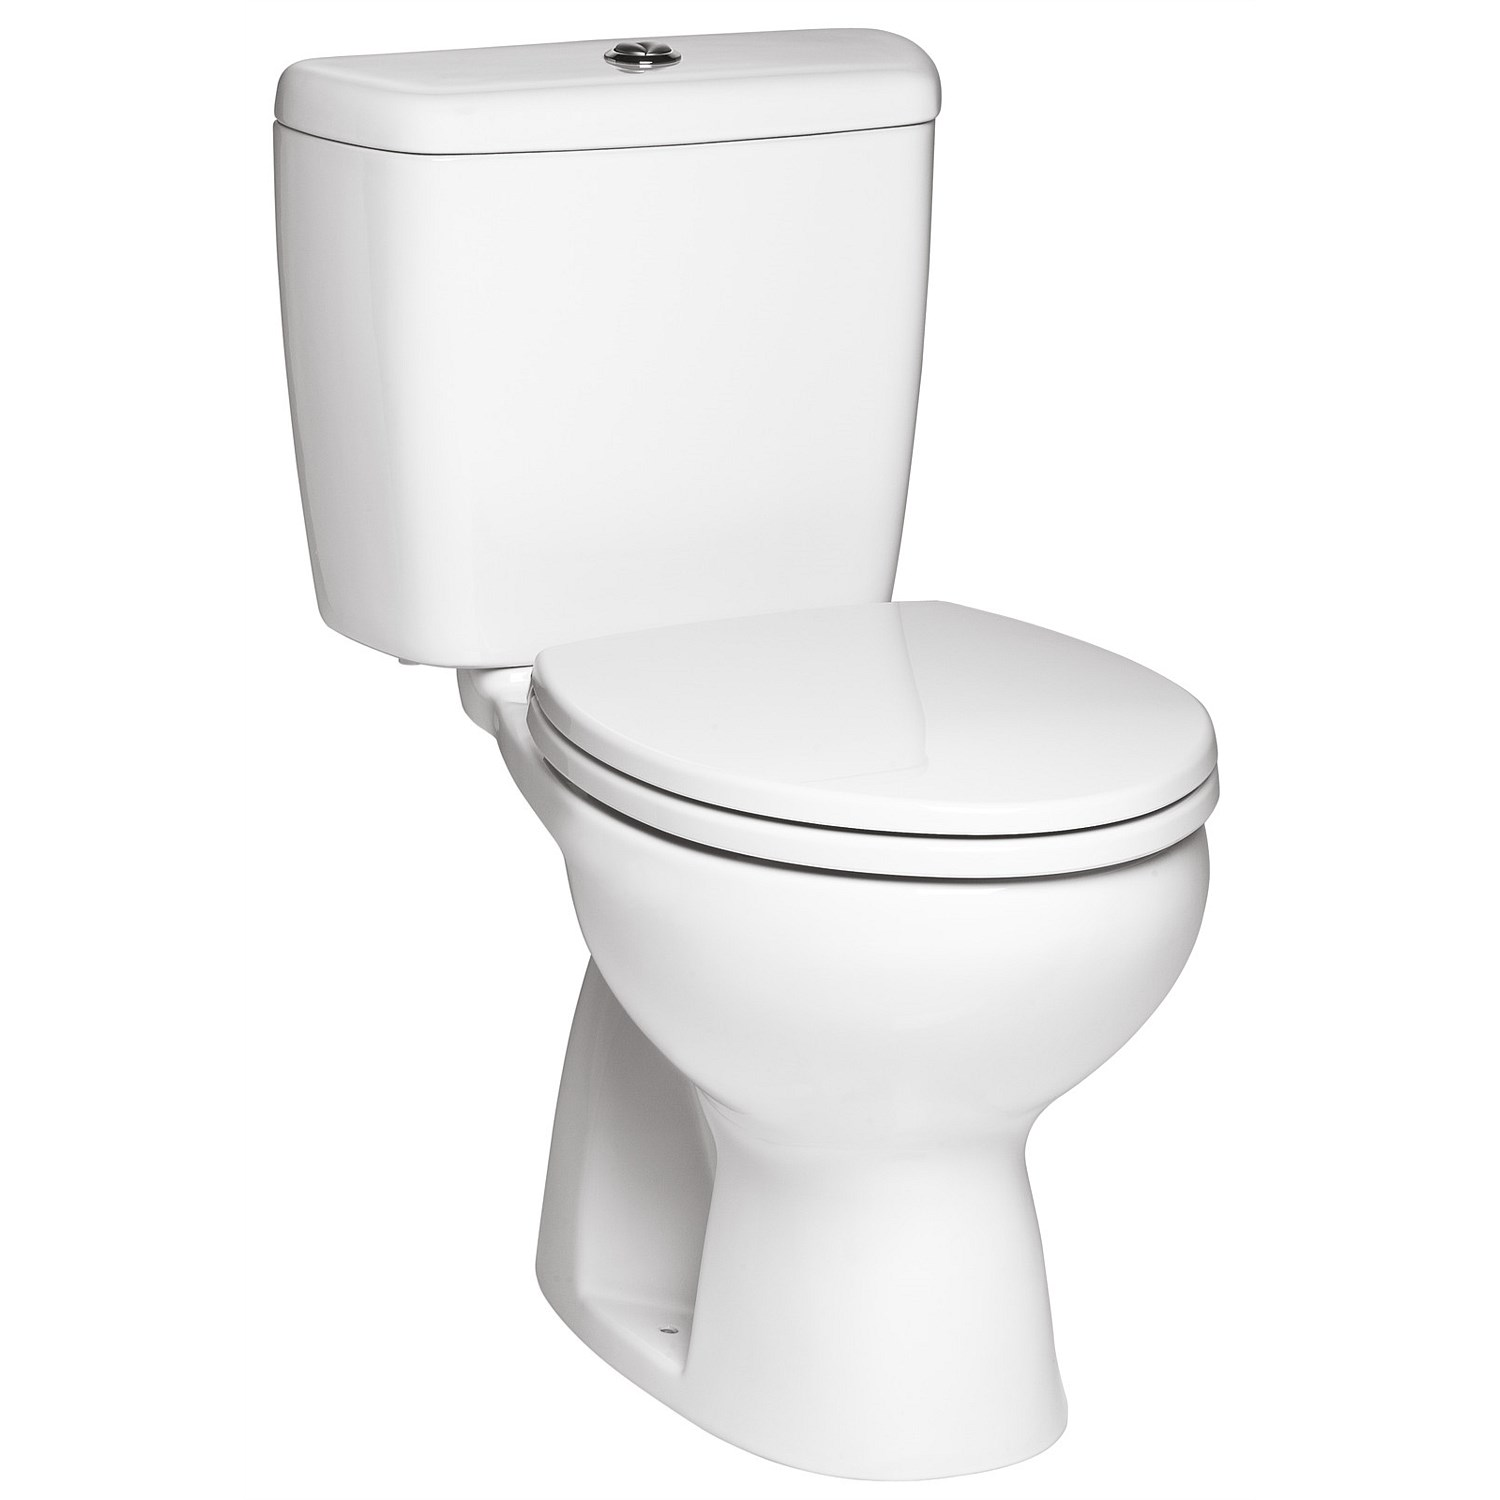 Toilet Suites | Plumbing World - Toto Sintra Close-Coupled Toilet Suite